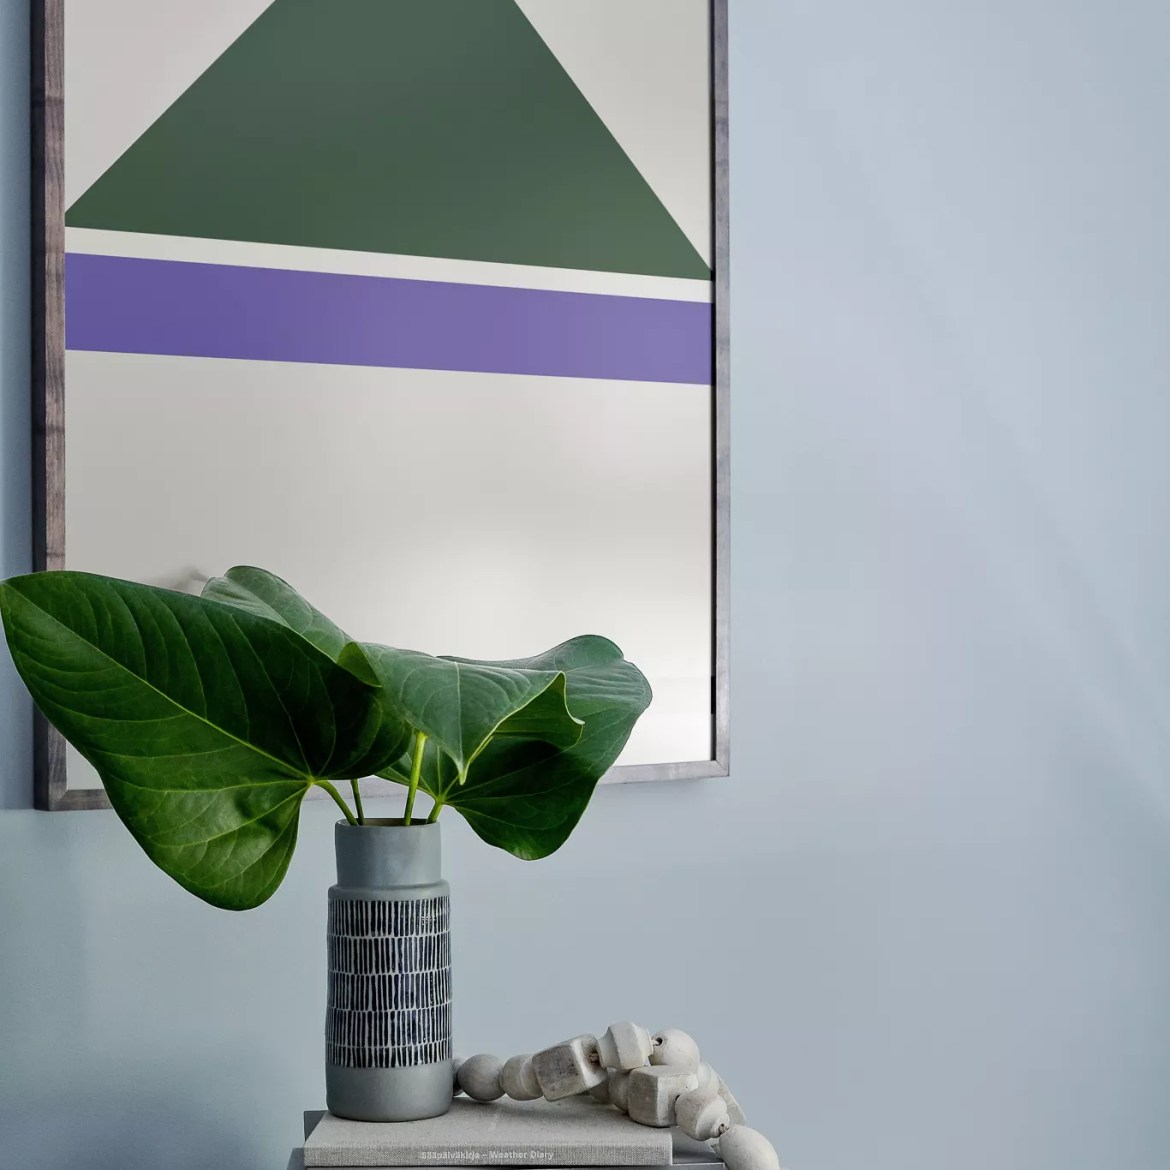 Art piece over entryway with large plant leaves.